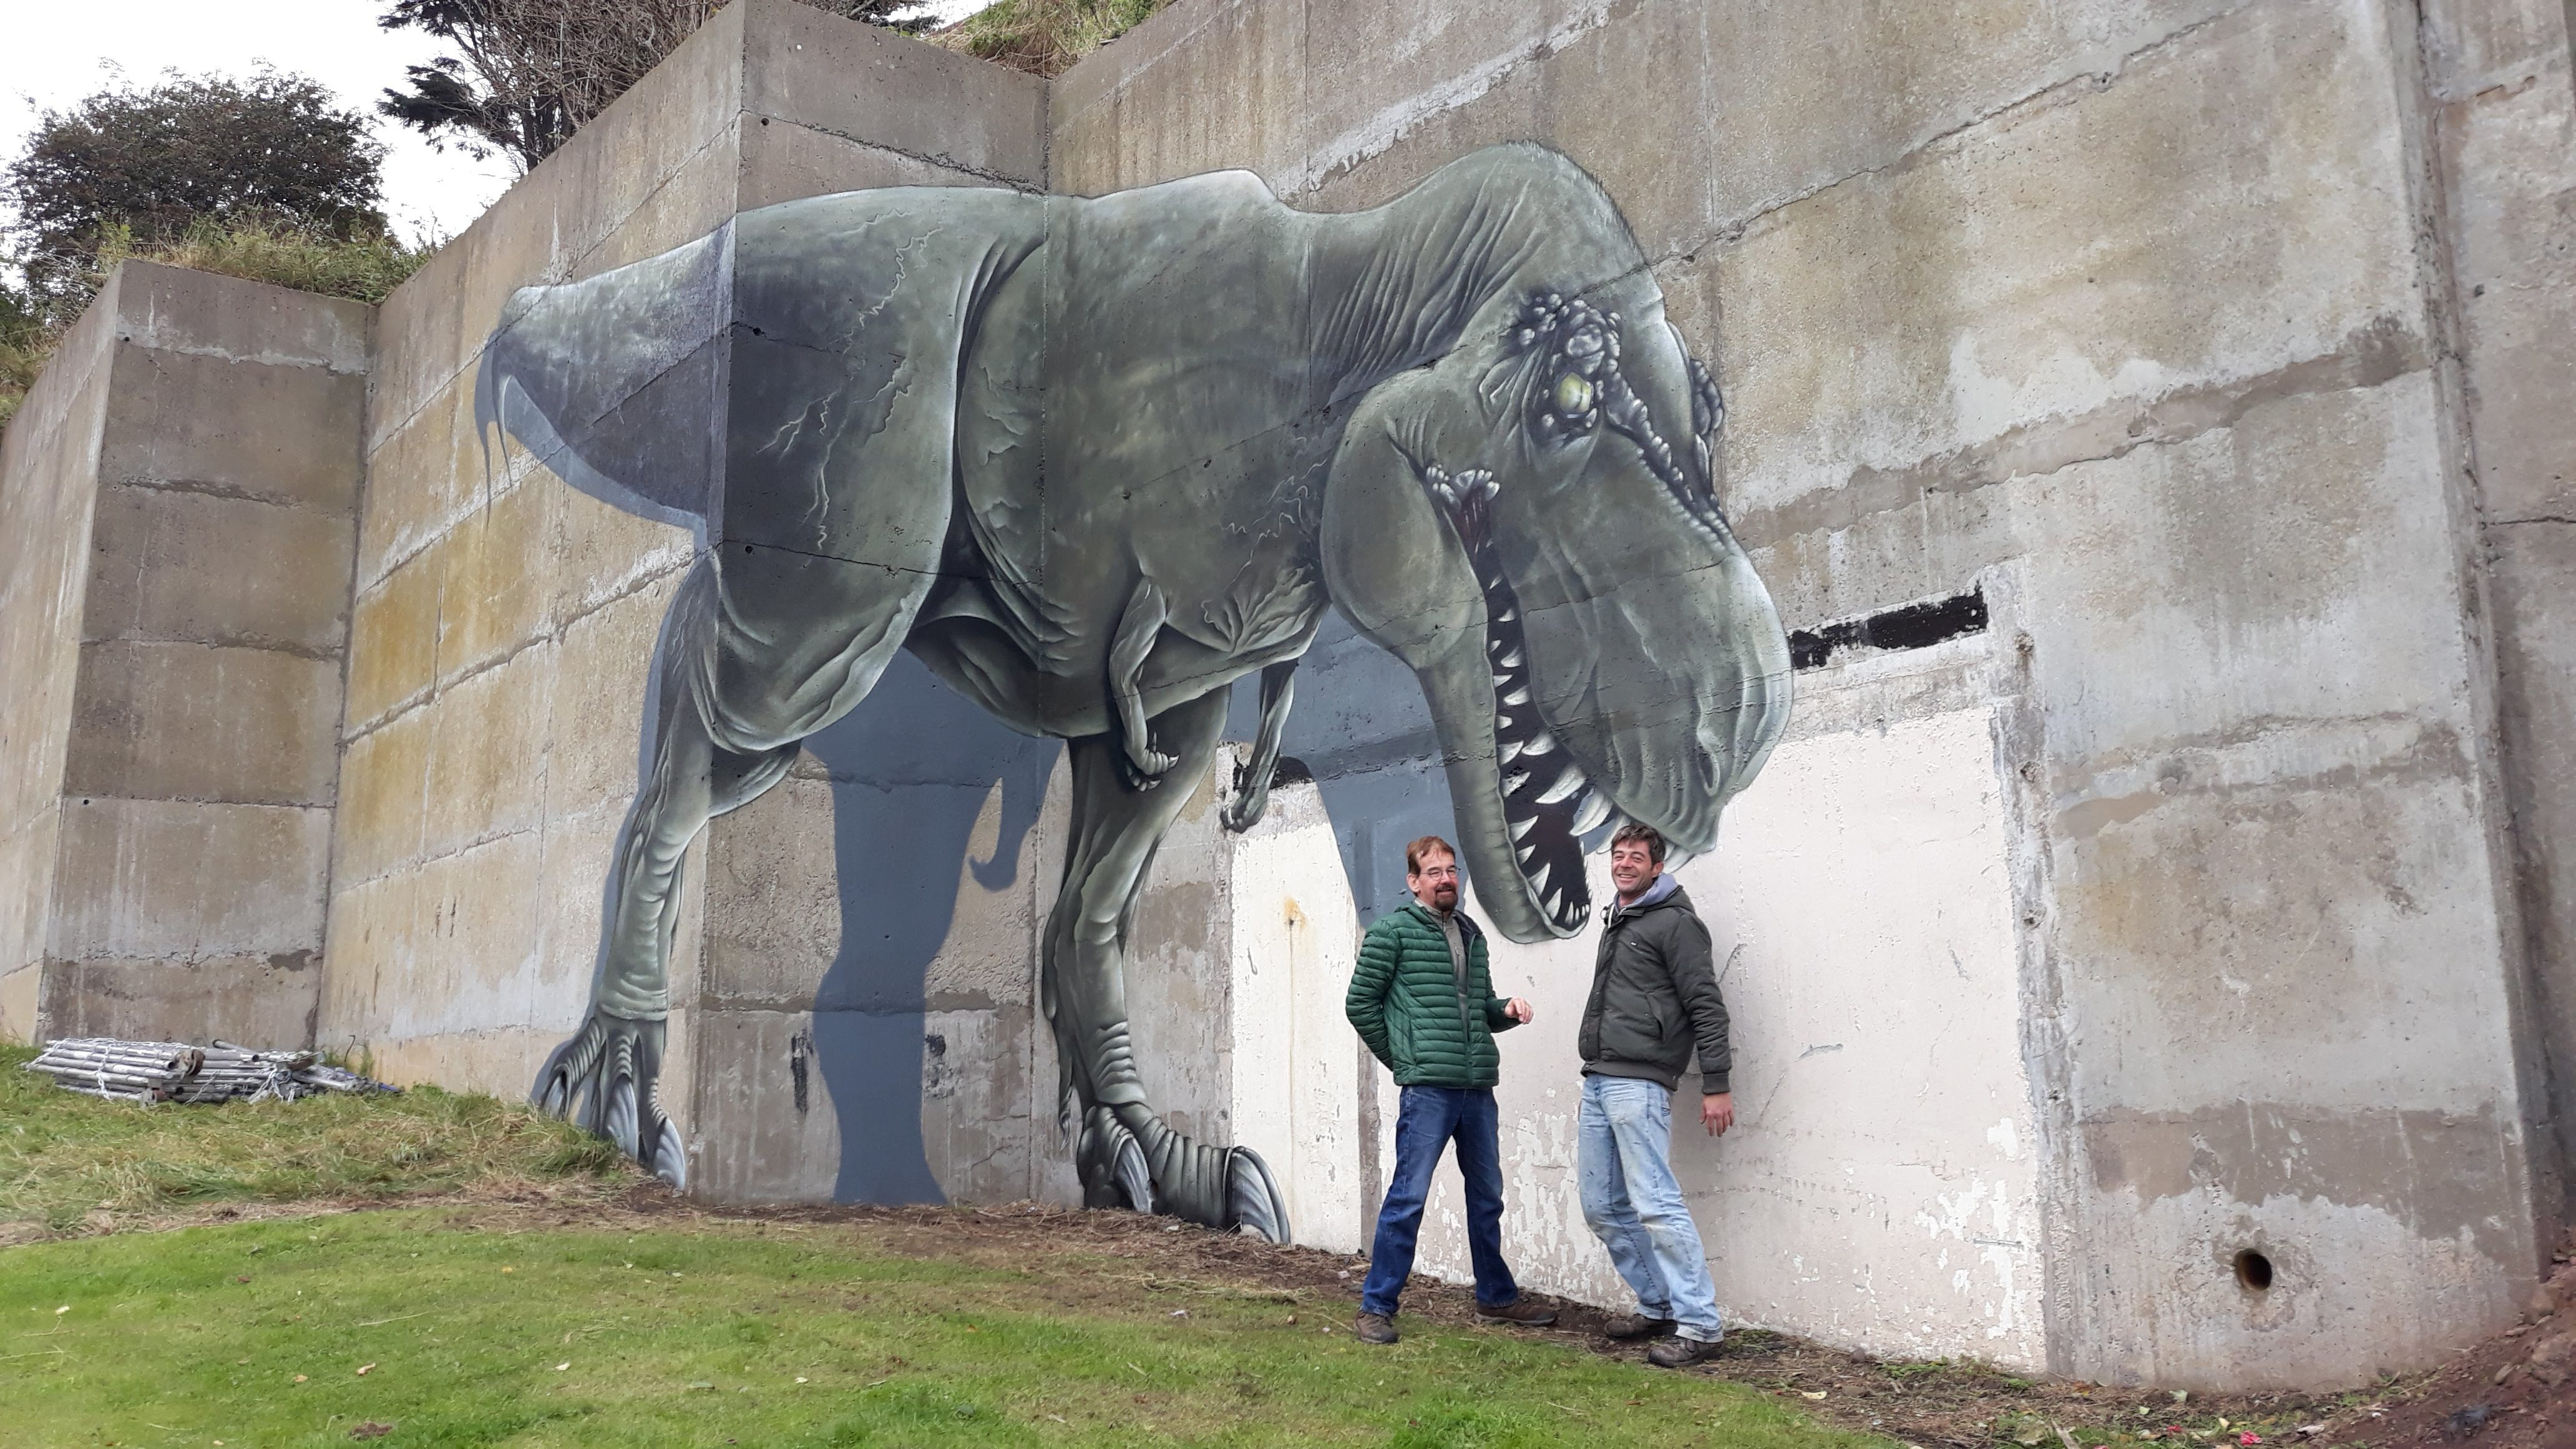 Bob Taylor, chairman of Community-Led Environmental Action for Regeneration, and artist Ian Tayak with the dinosaur art.